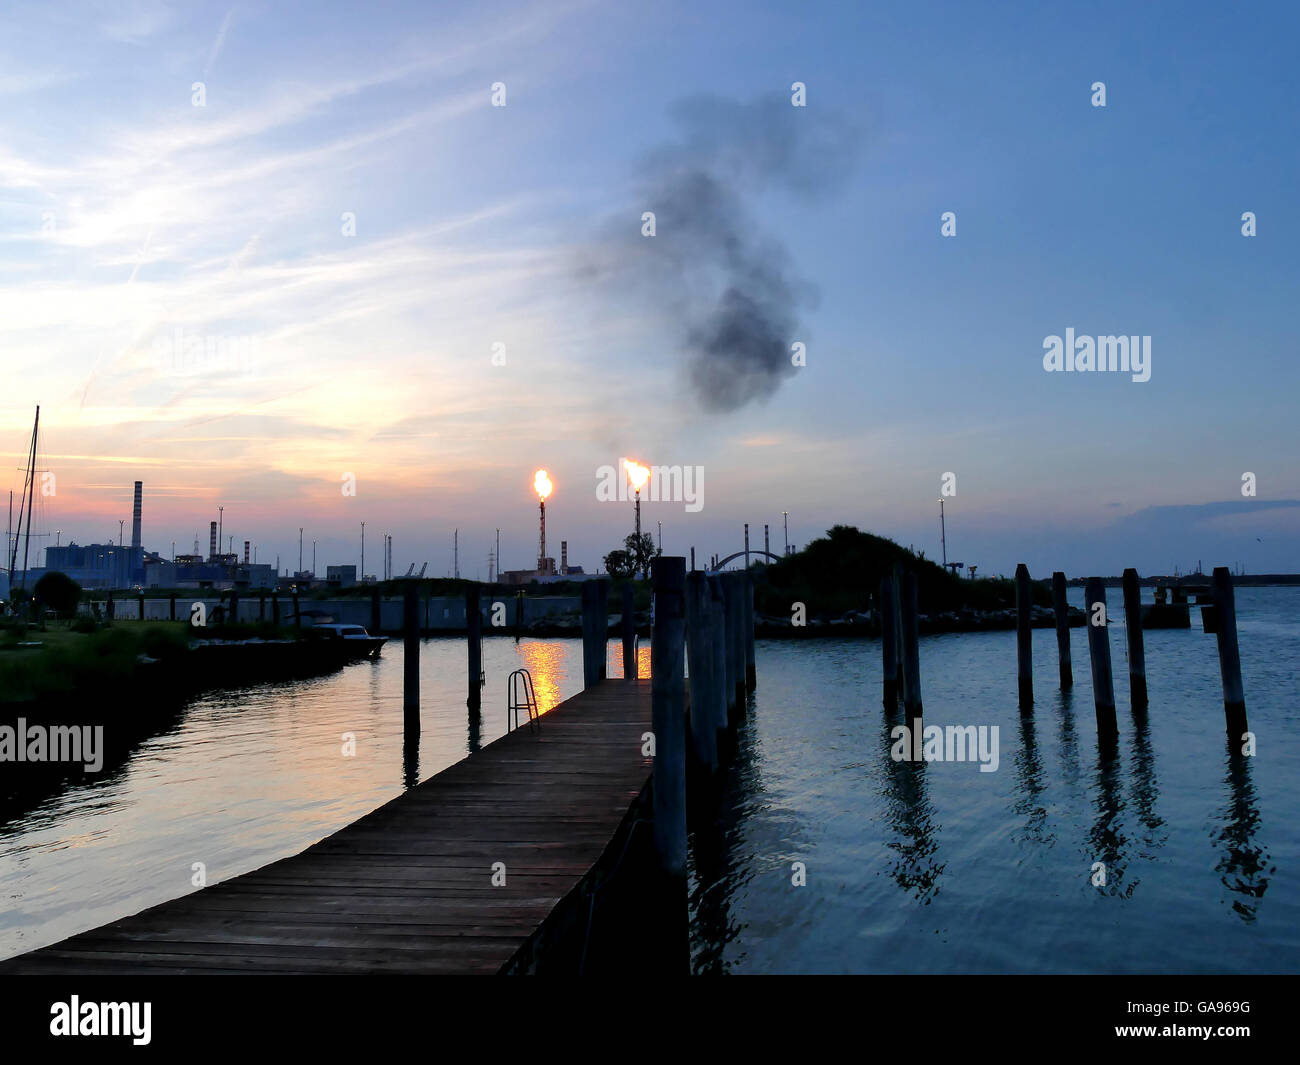 Oil refinery bursting flames at sunset close to shore, Venice Italy - Stock Image